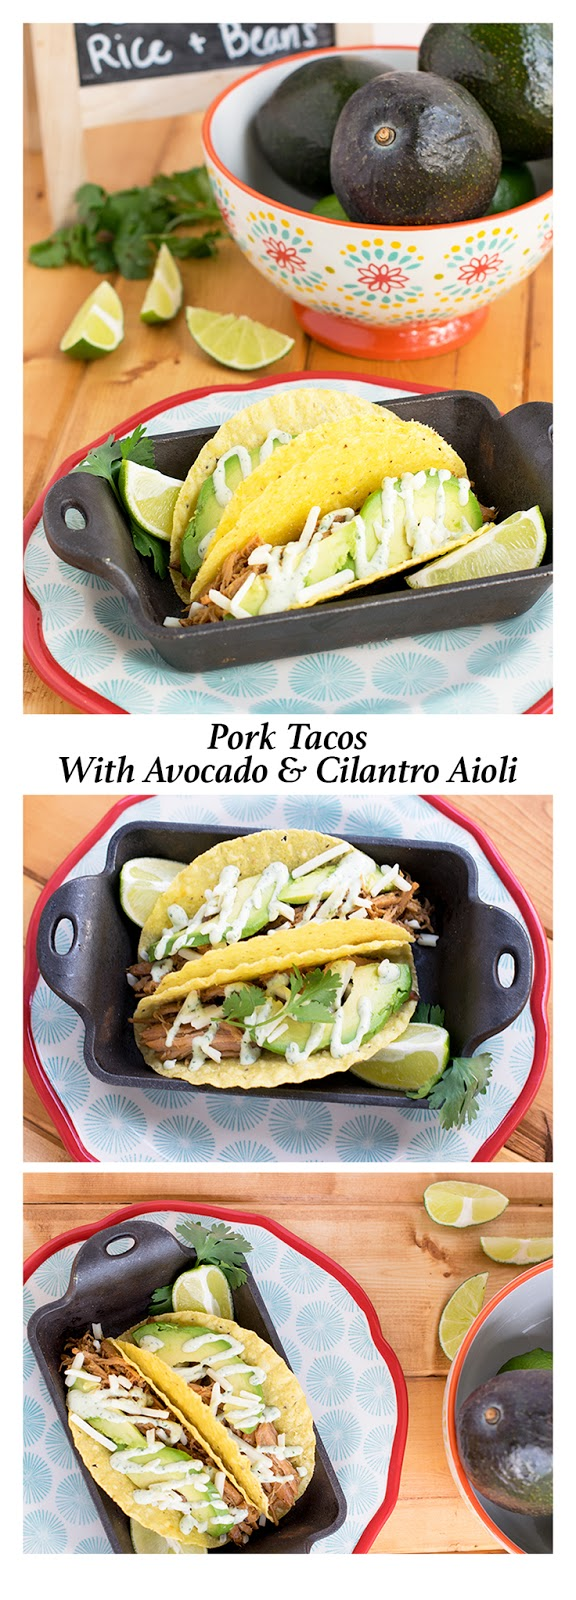 These easy pork tacos will knock your socks off! Make those hectic back to school dinners even easier by utilizing your slow cooker for this recipe. Features an additional recipe for Cilantro Aioli that makes the tacos taste like you just ordered them from a taco truck! #pork #GetBackToPork #recipe #dinner #taco #WeaveMadeMedia